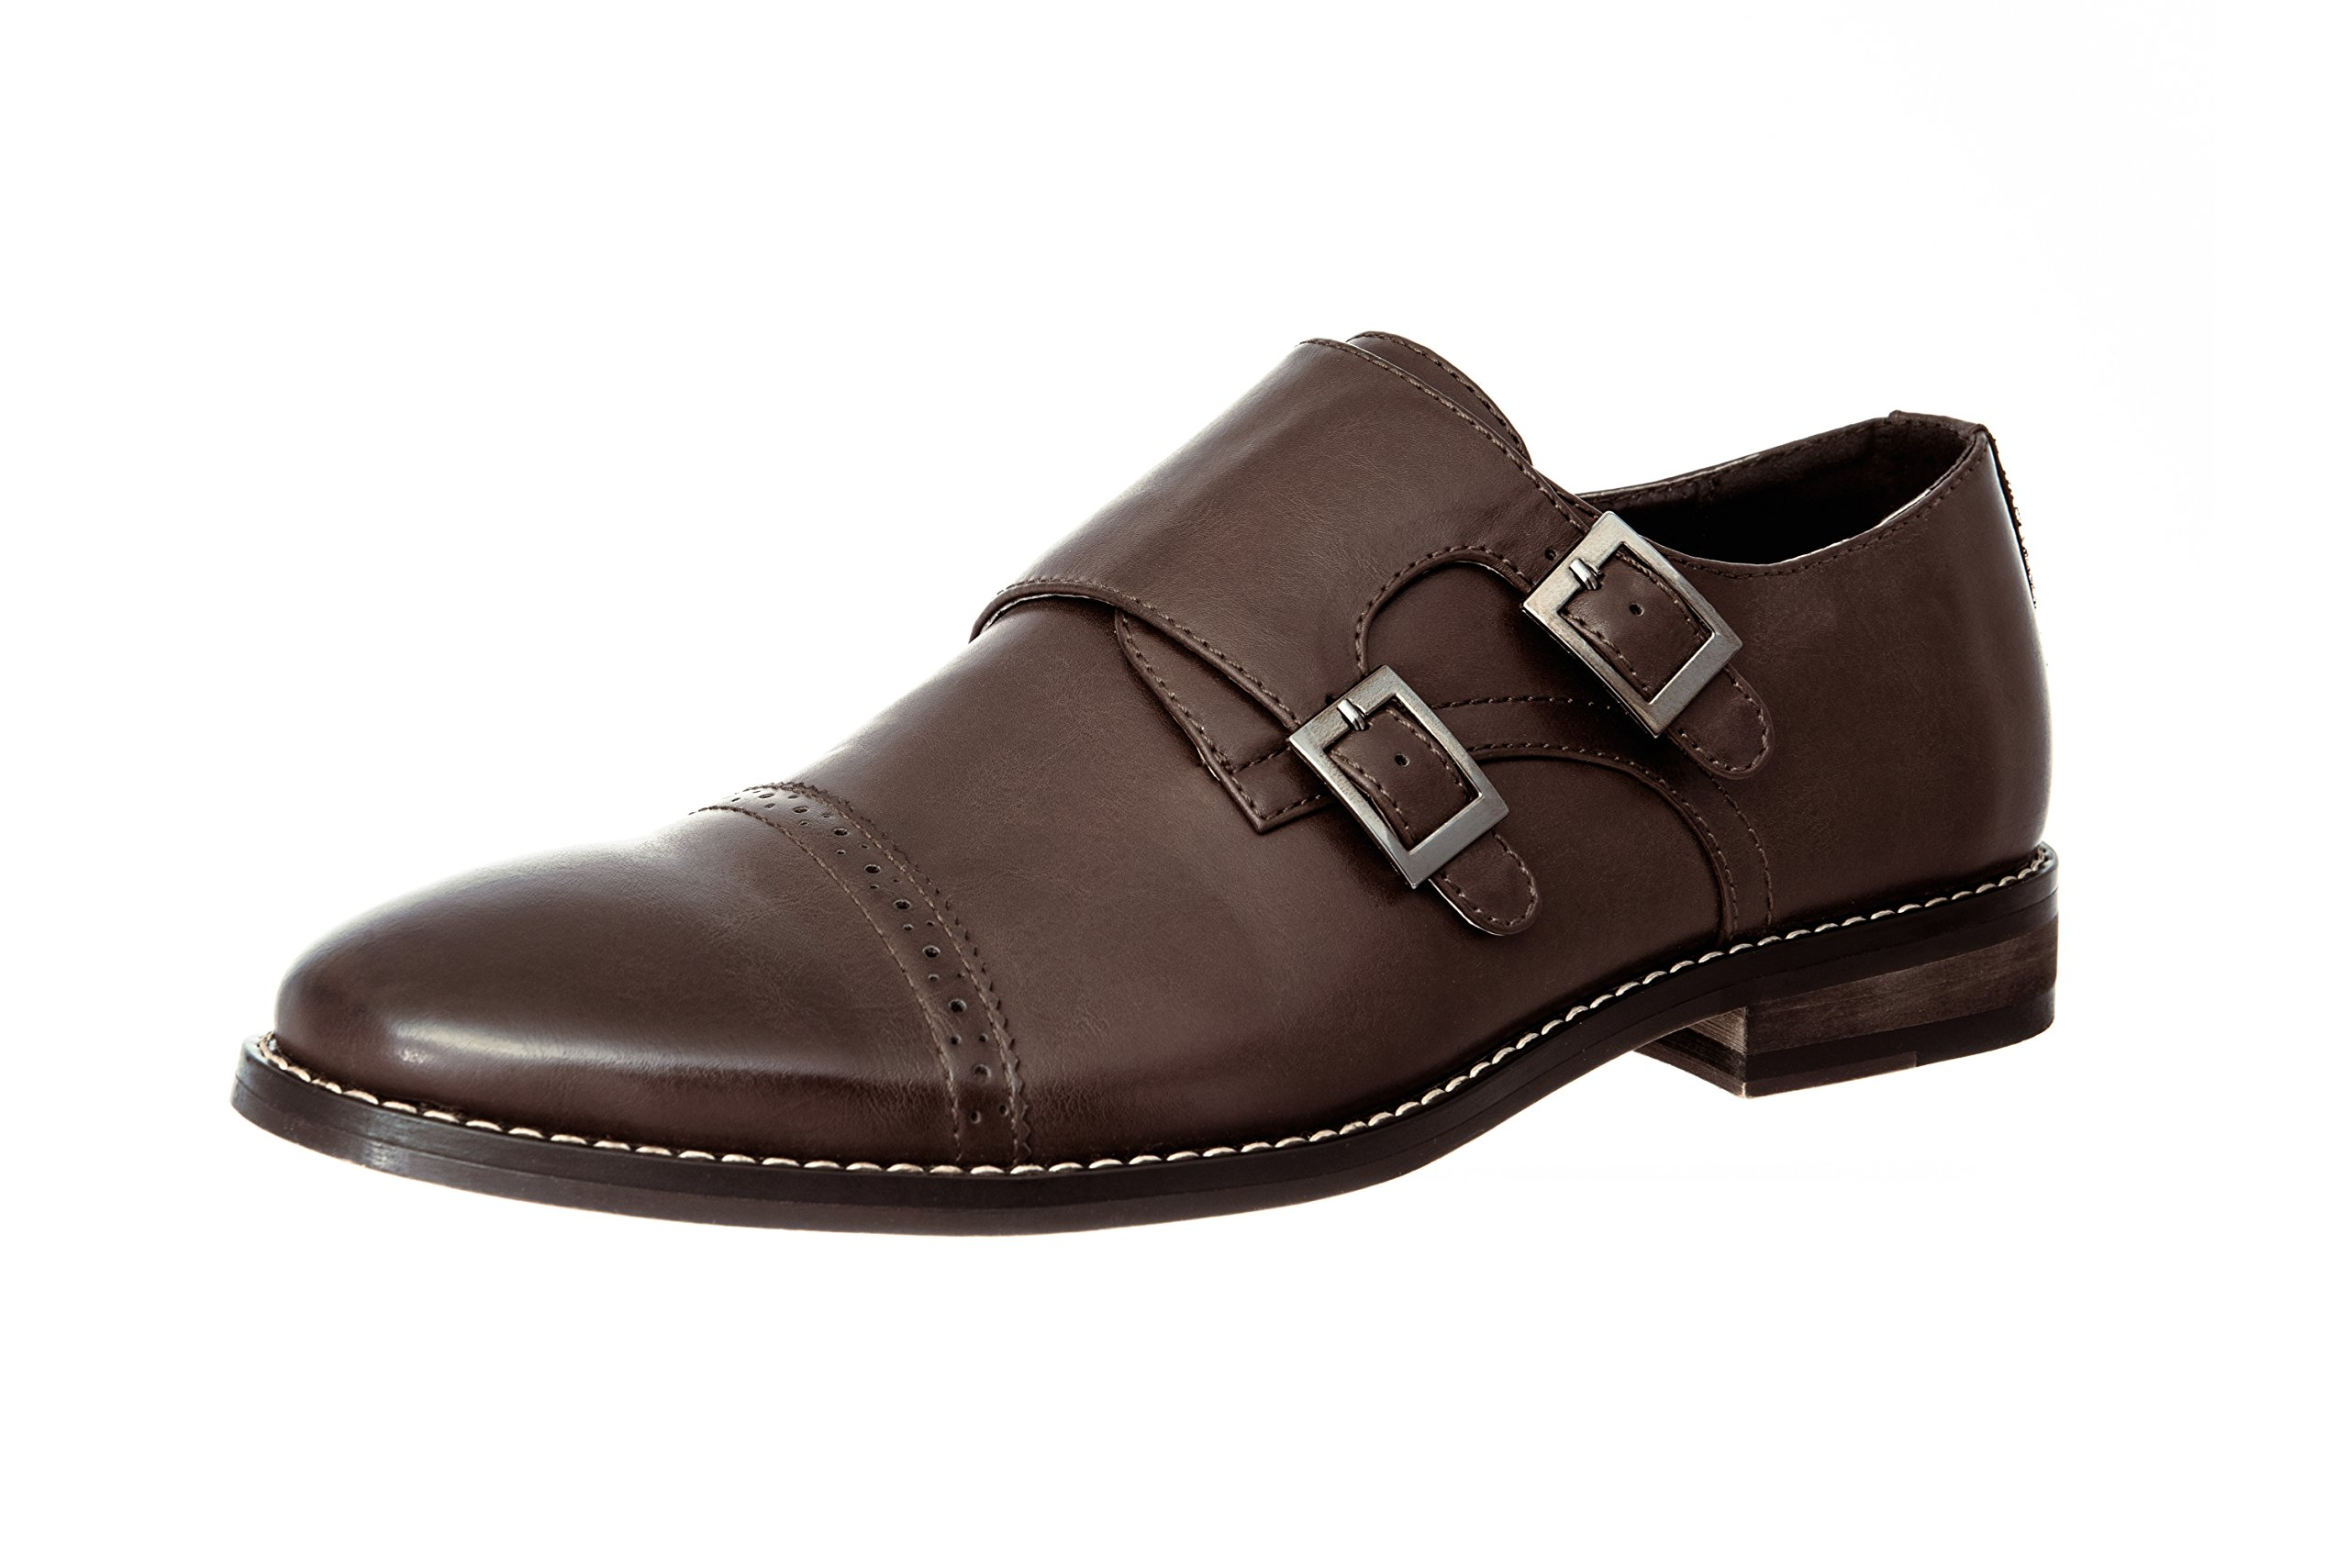 J's.o.l.e Men's Monk Oxford Dress Shoes Brown US 10